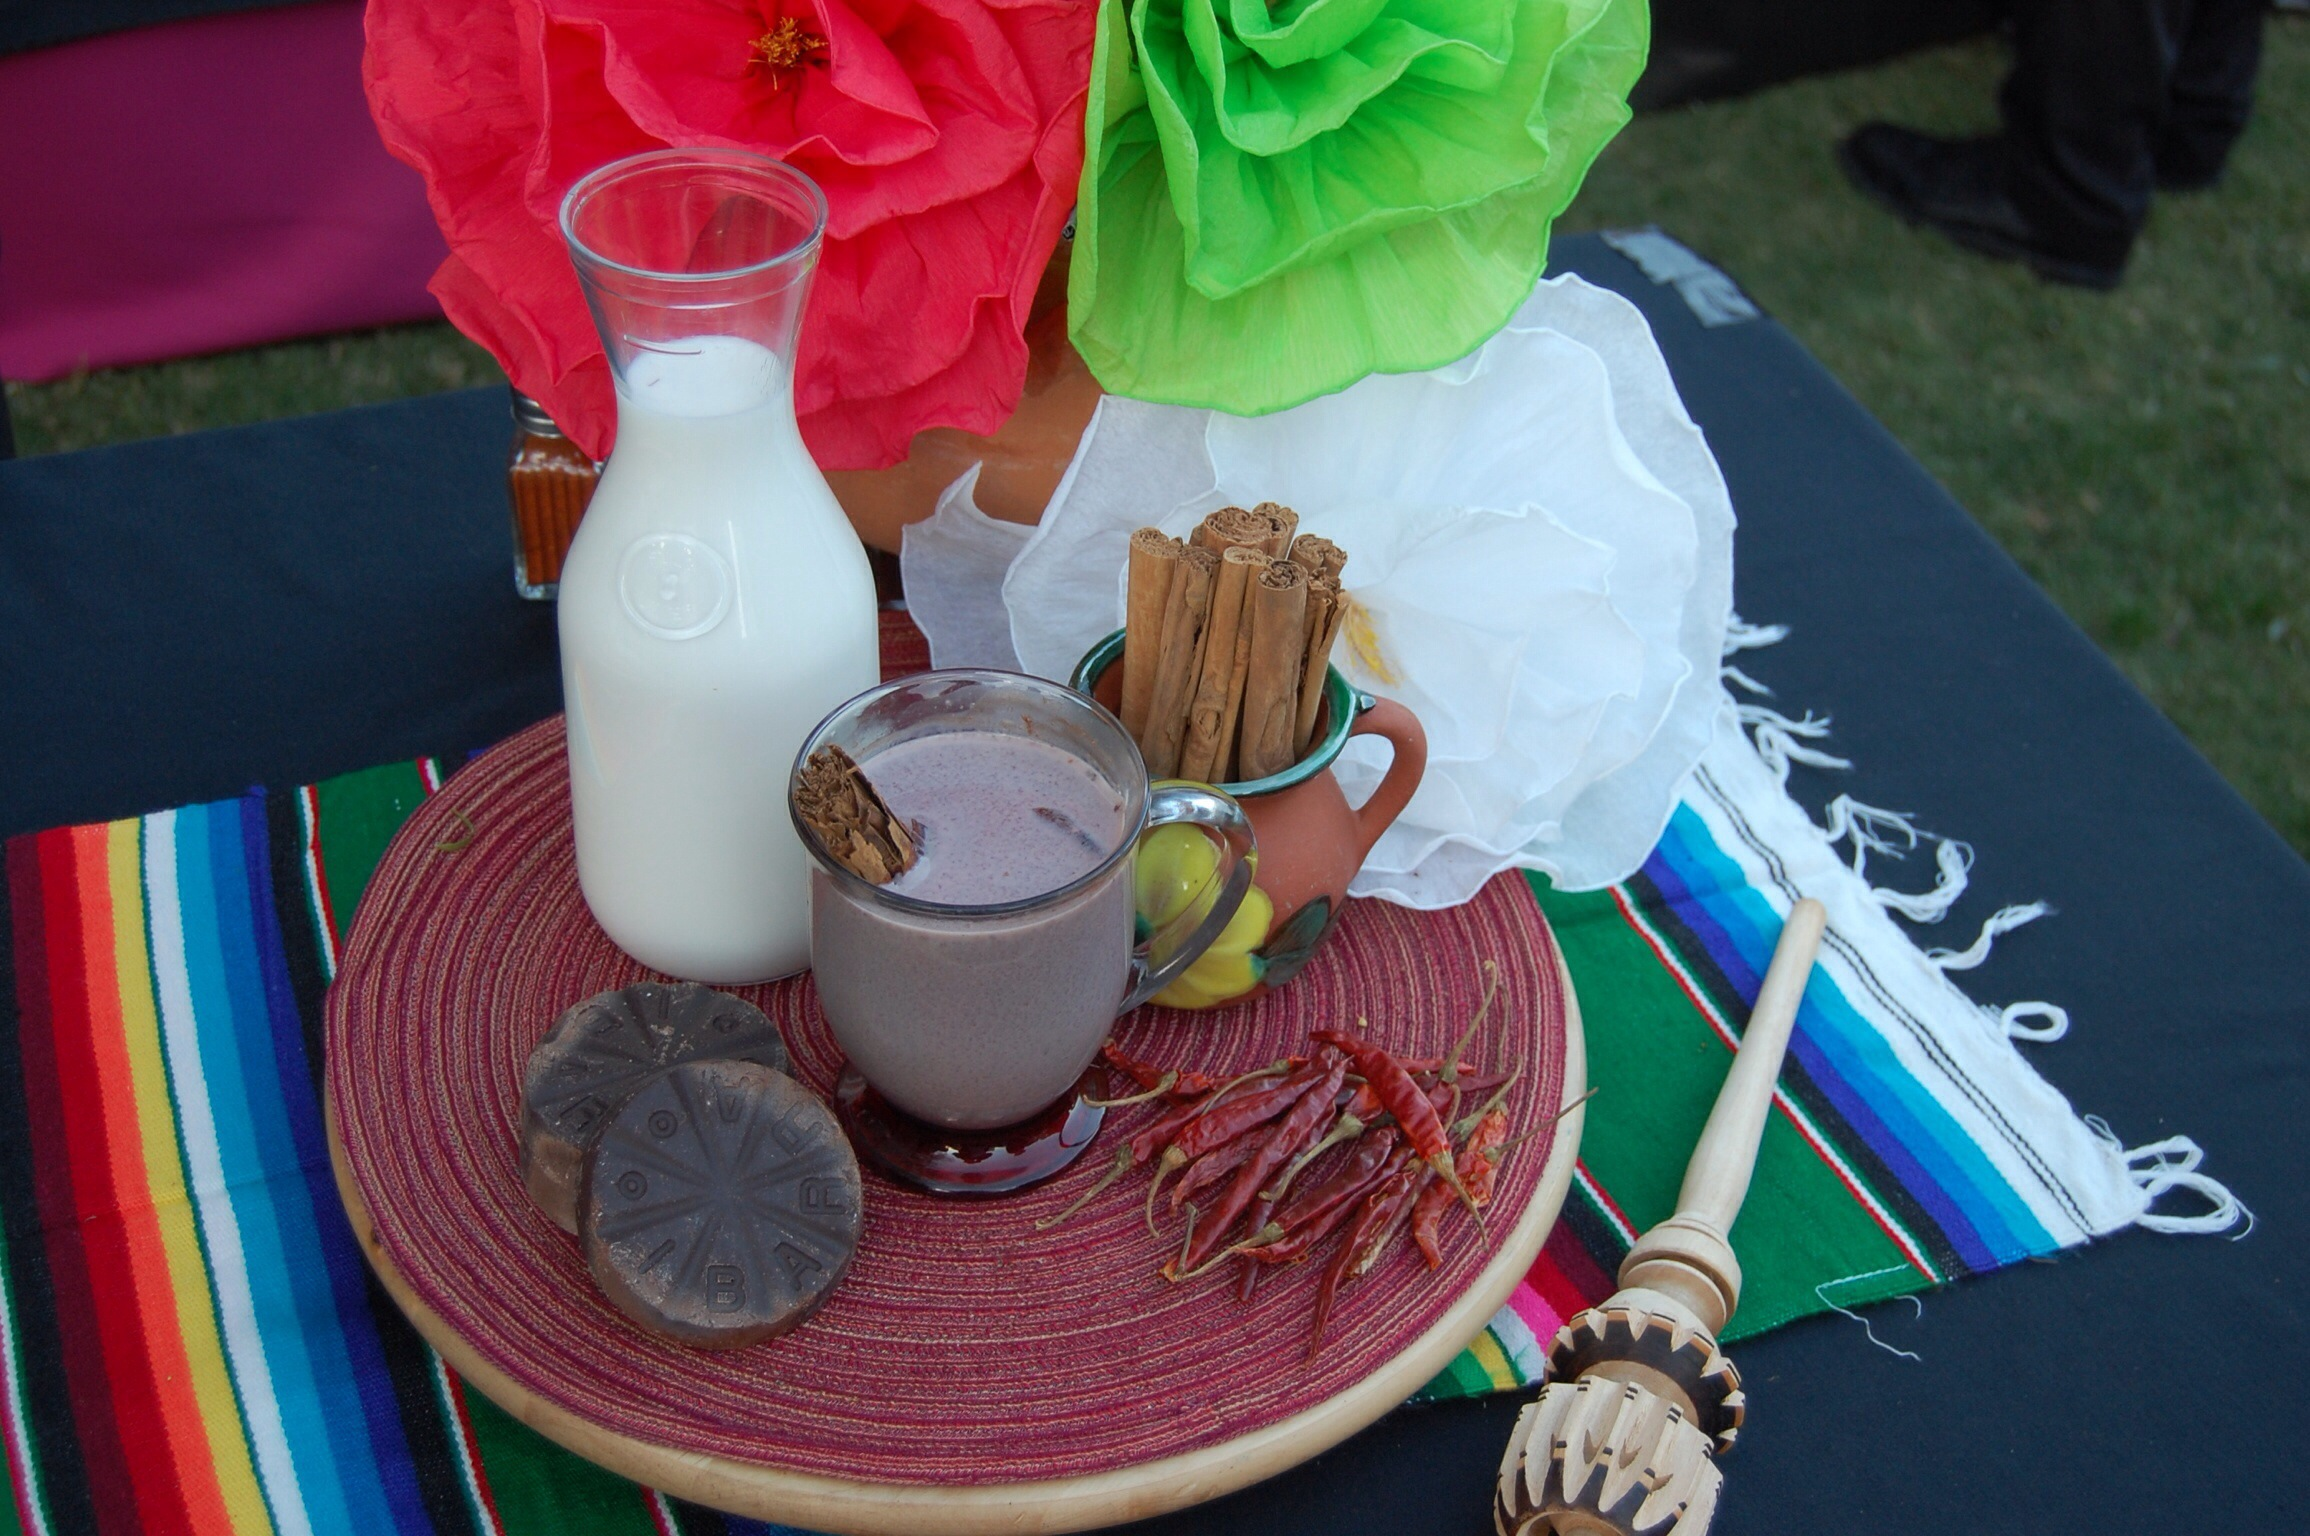 Hot Chocolate at The Taste of Mexico 2013